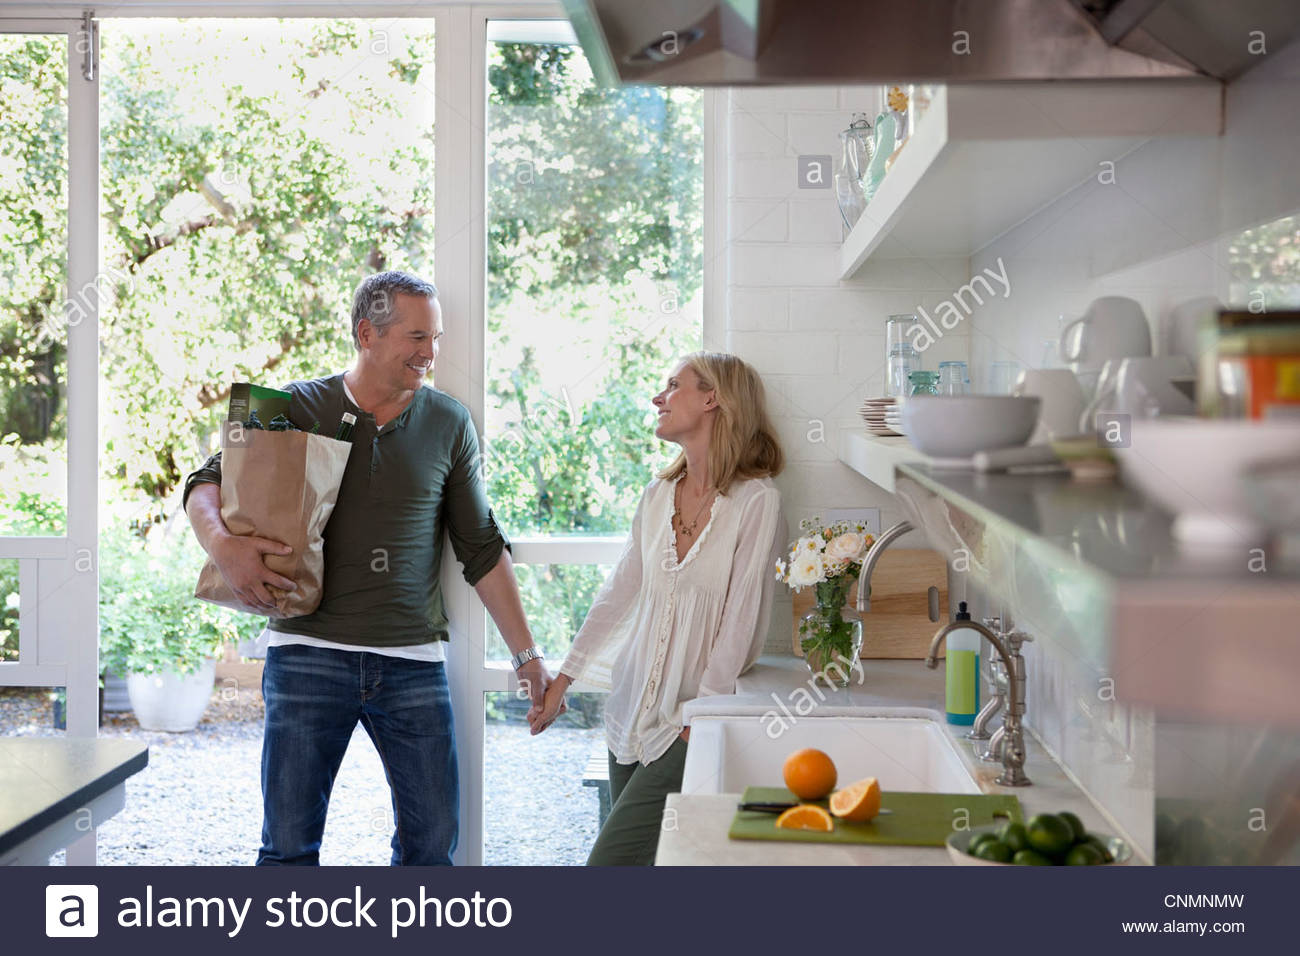 Couple holding hands in kitchen - Stock Image